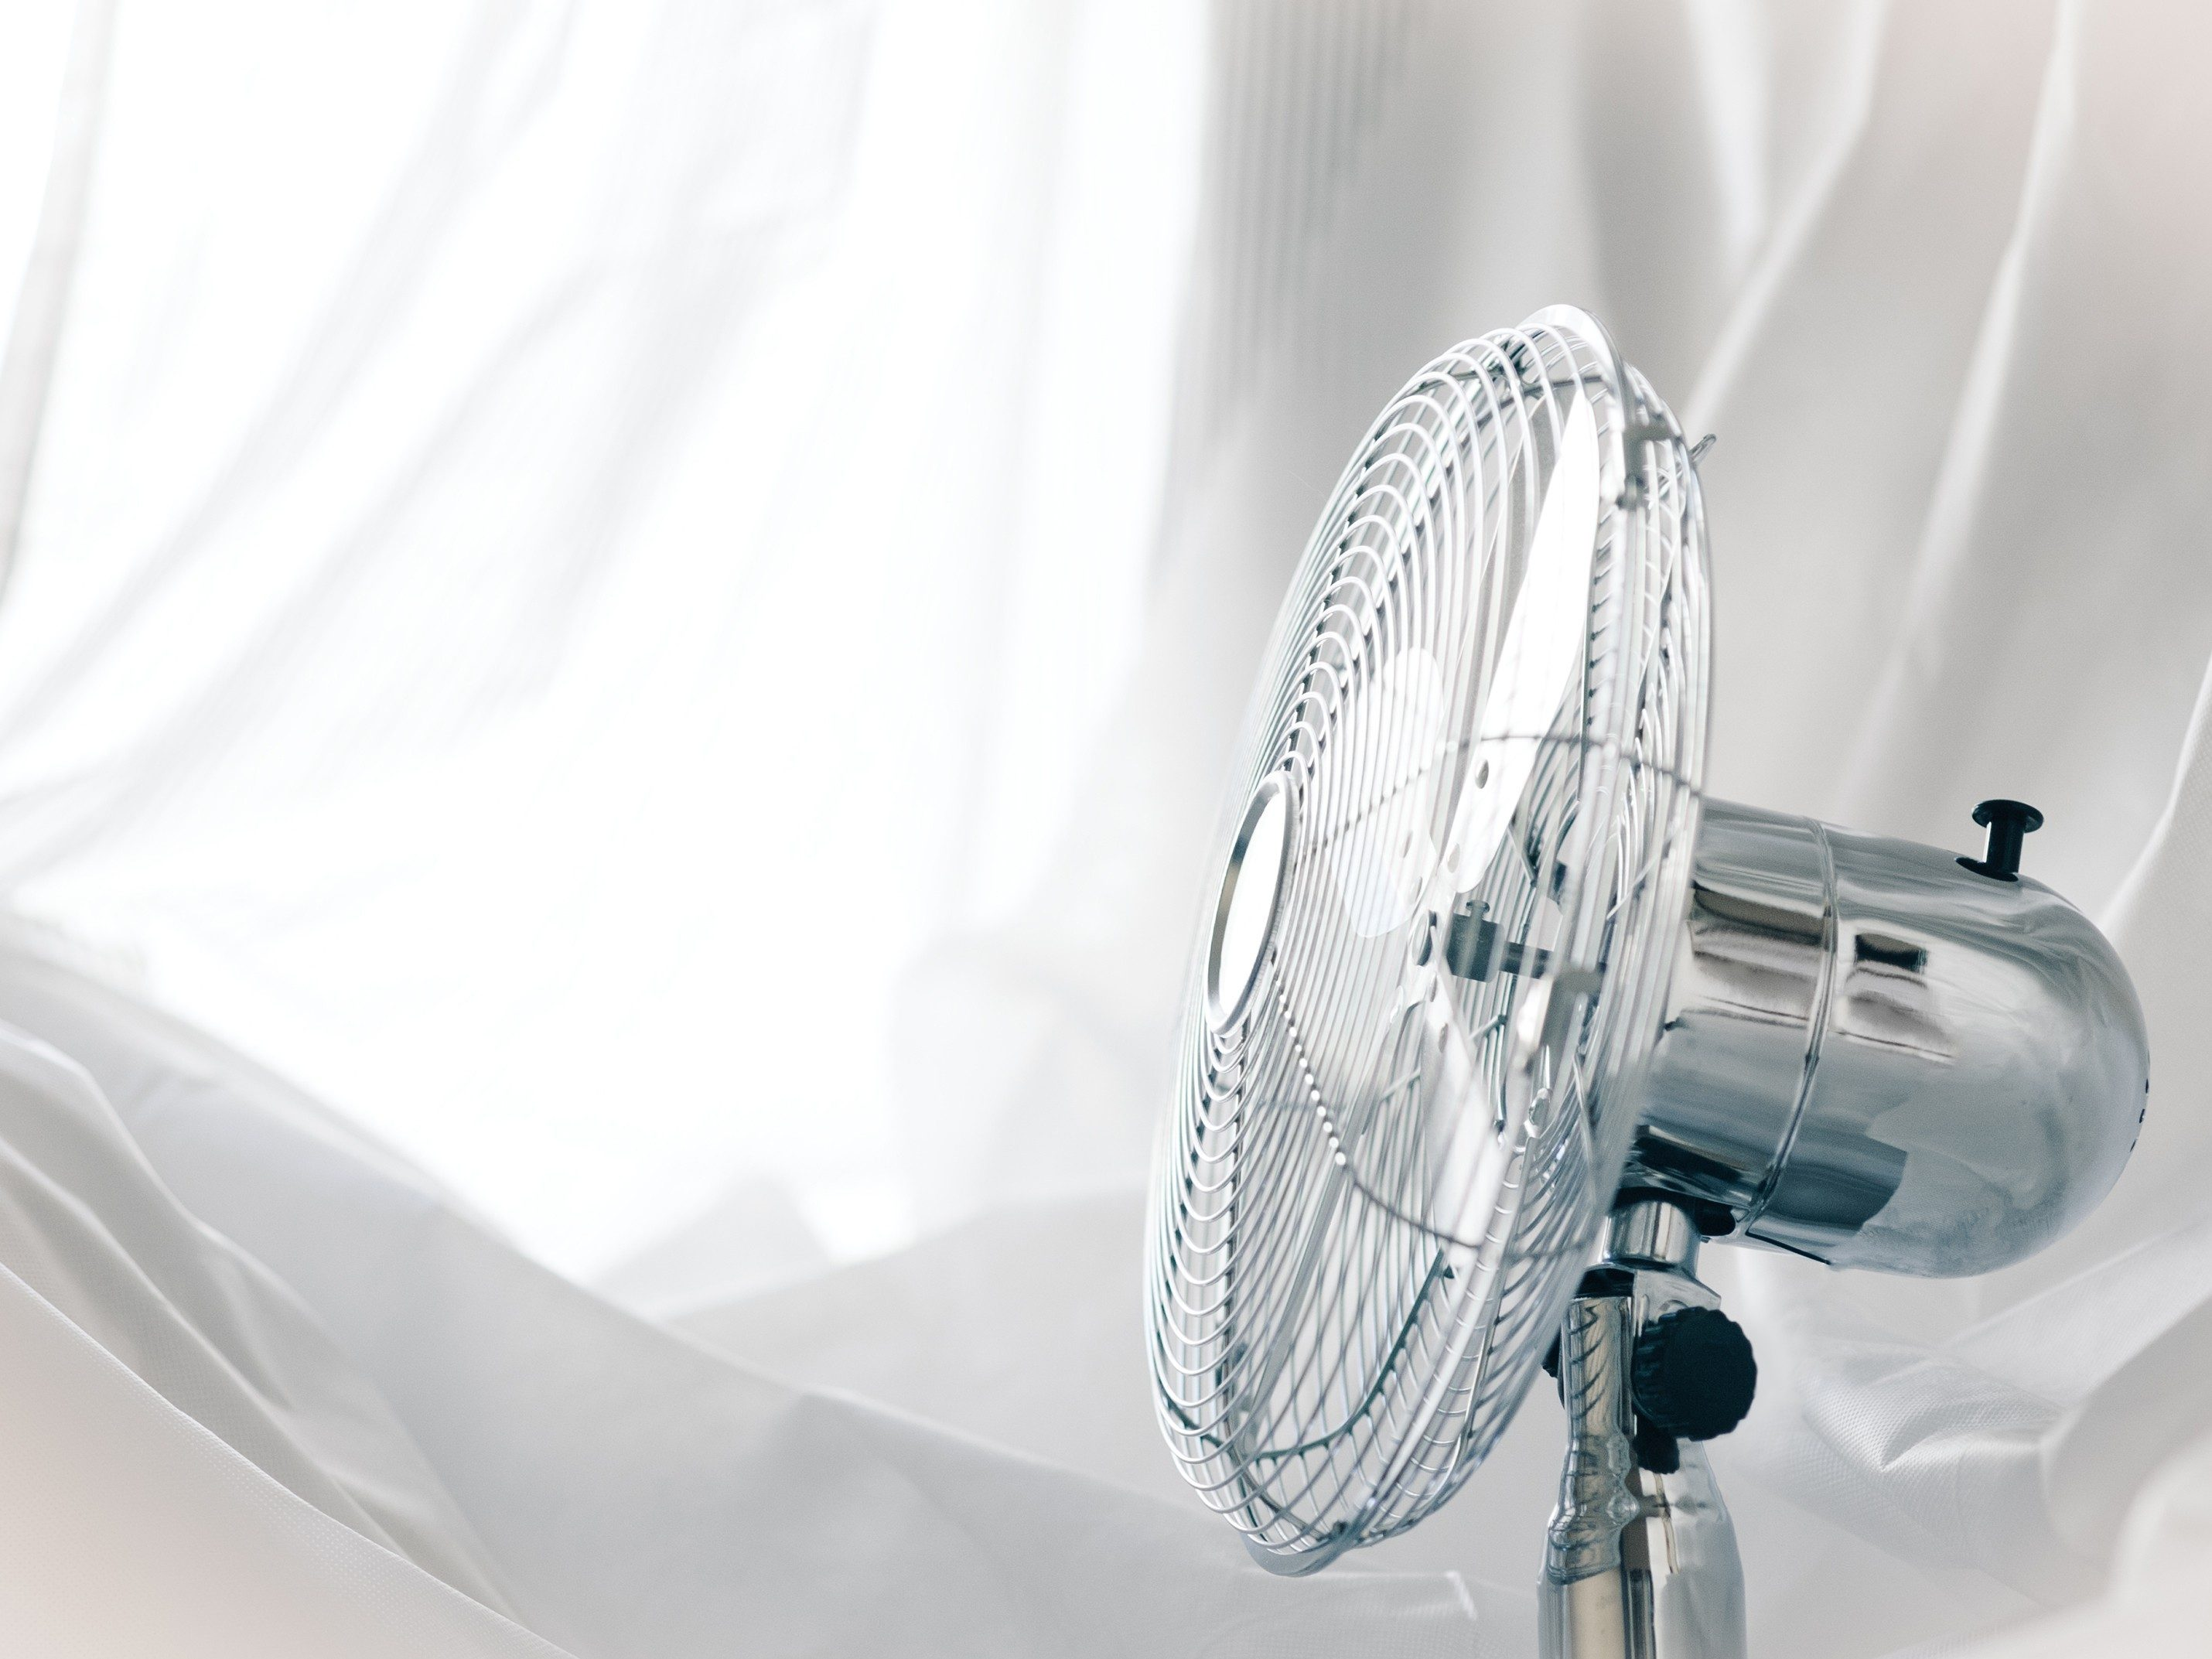 6. Sleep with a fan blowing on you.